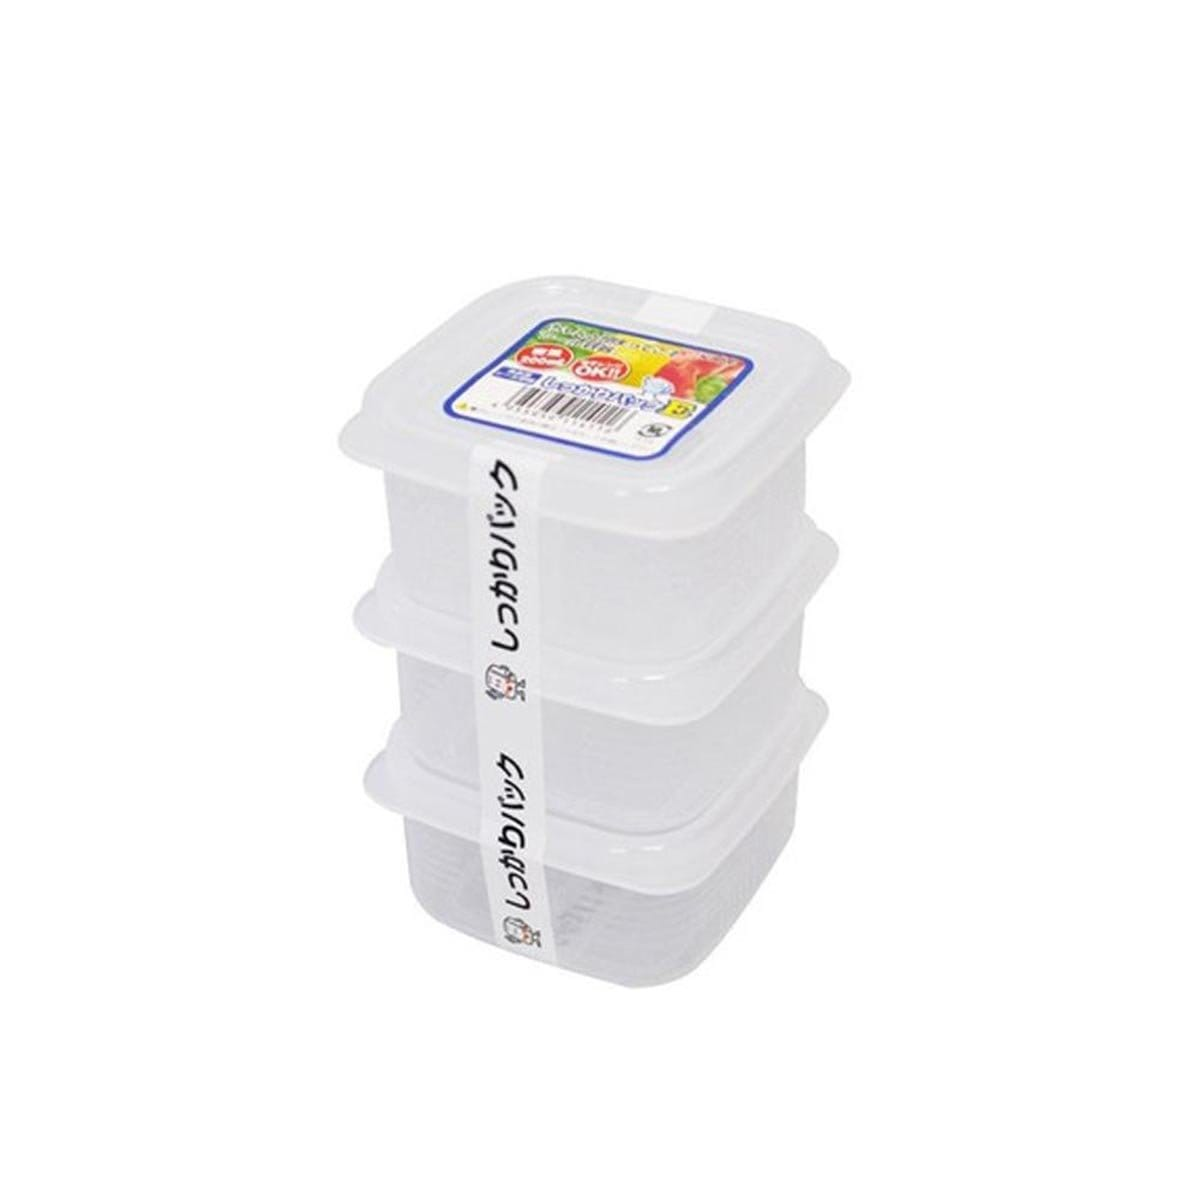 Japanese Plastic Food Storage Container E (200ml x 3pcs)